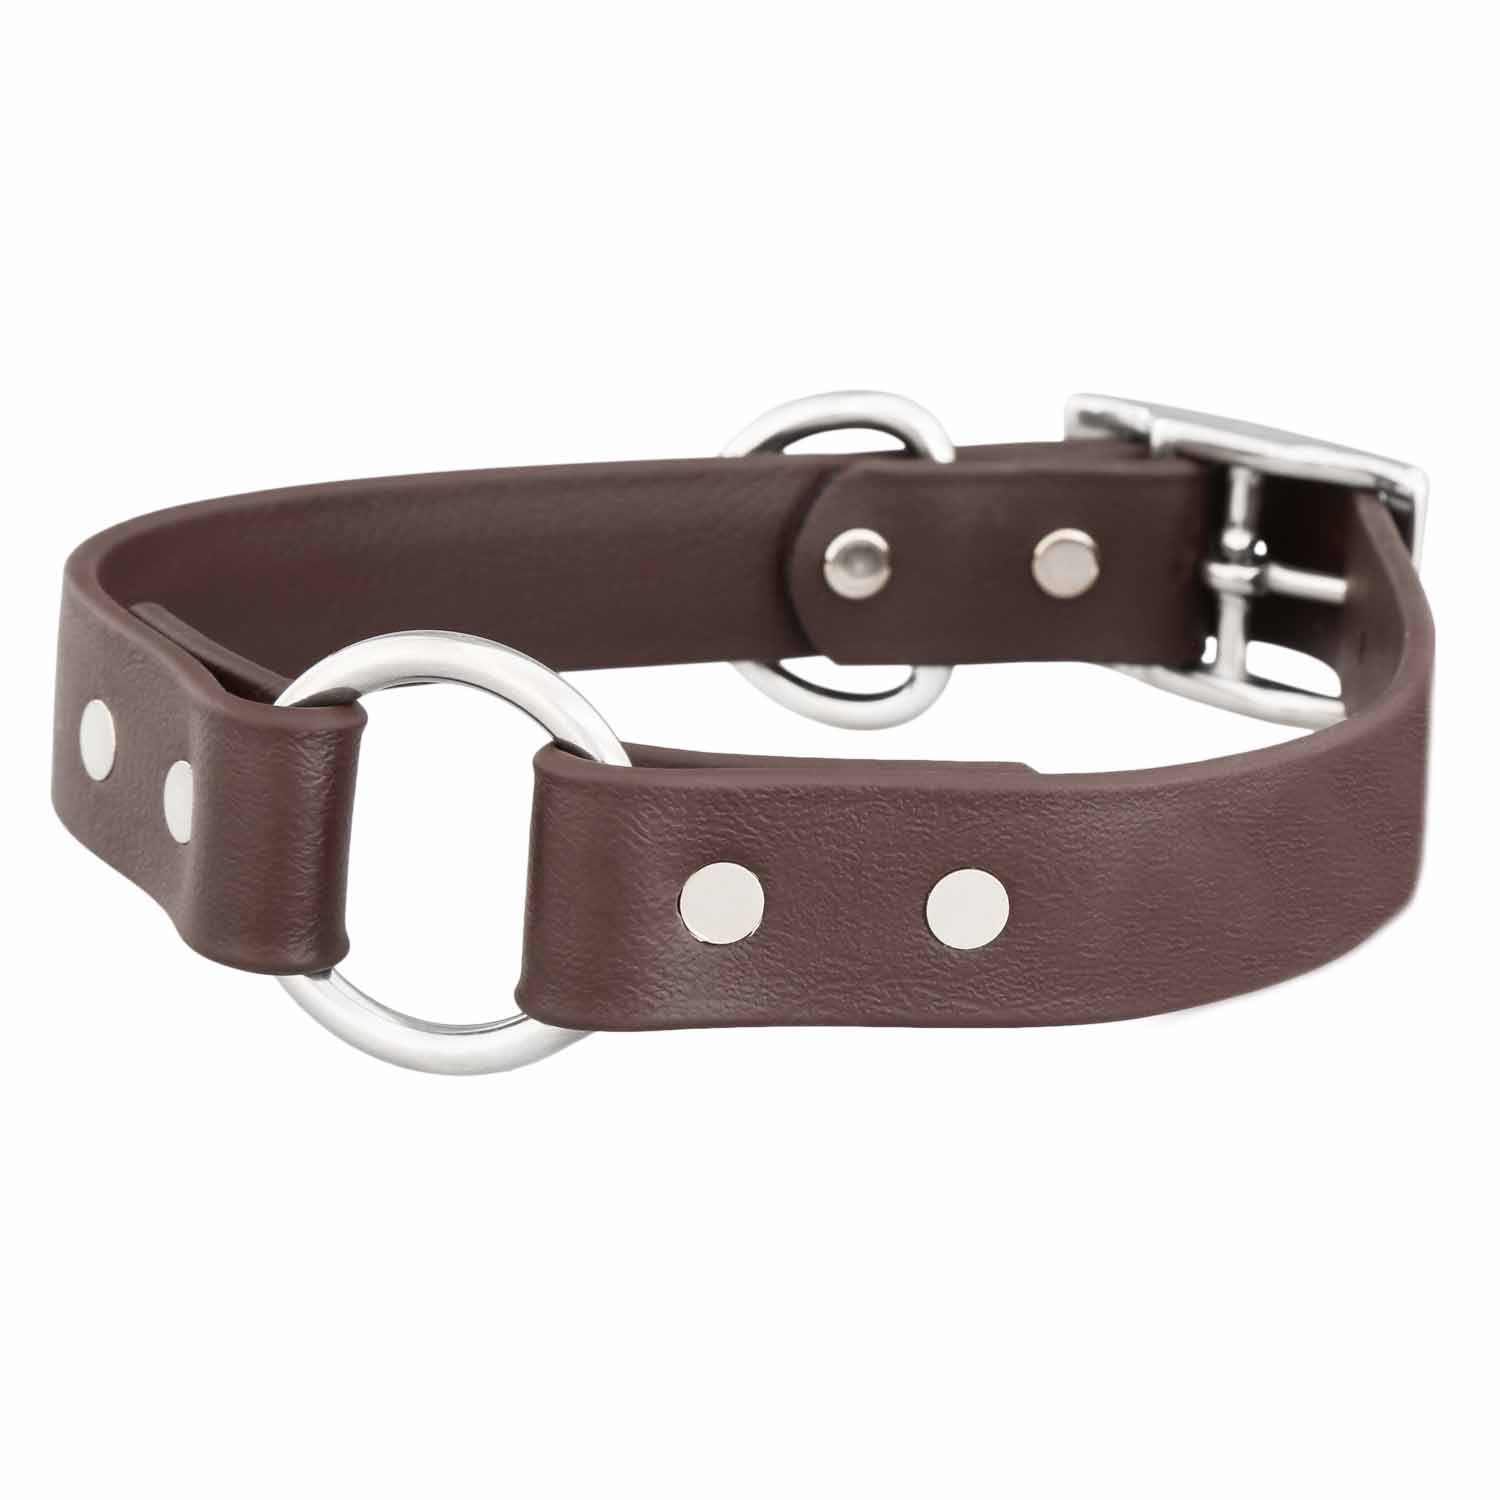 Waterproof Safety Dog Collar - Brown